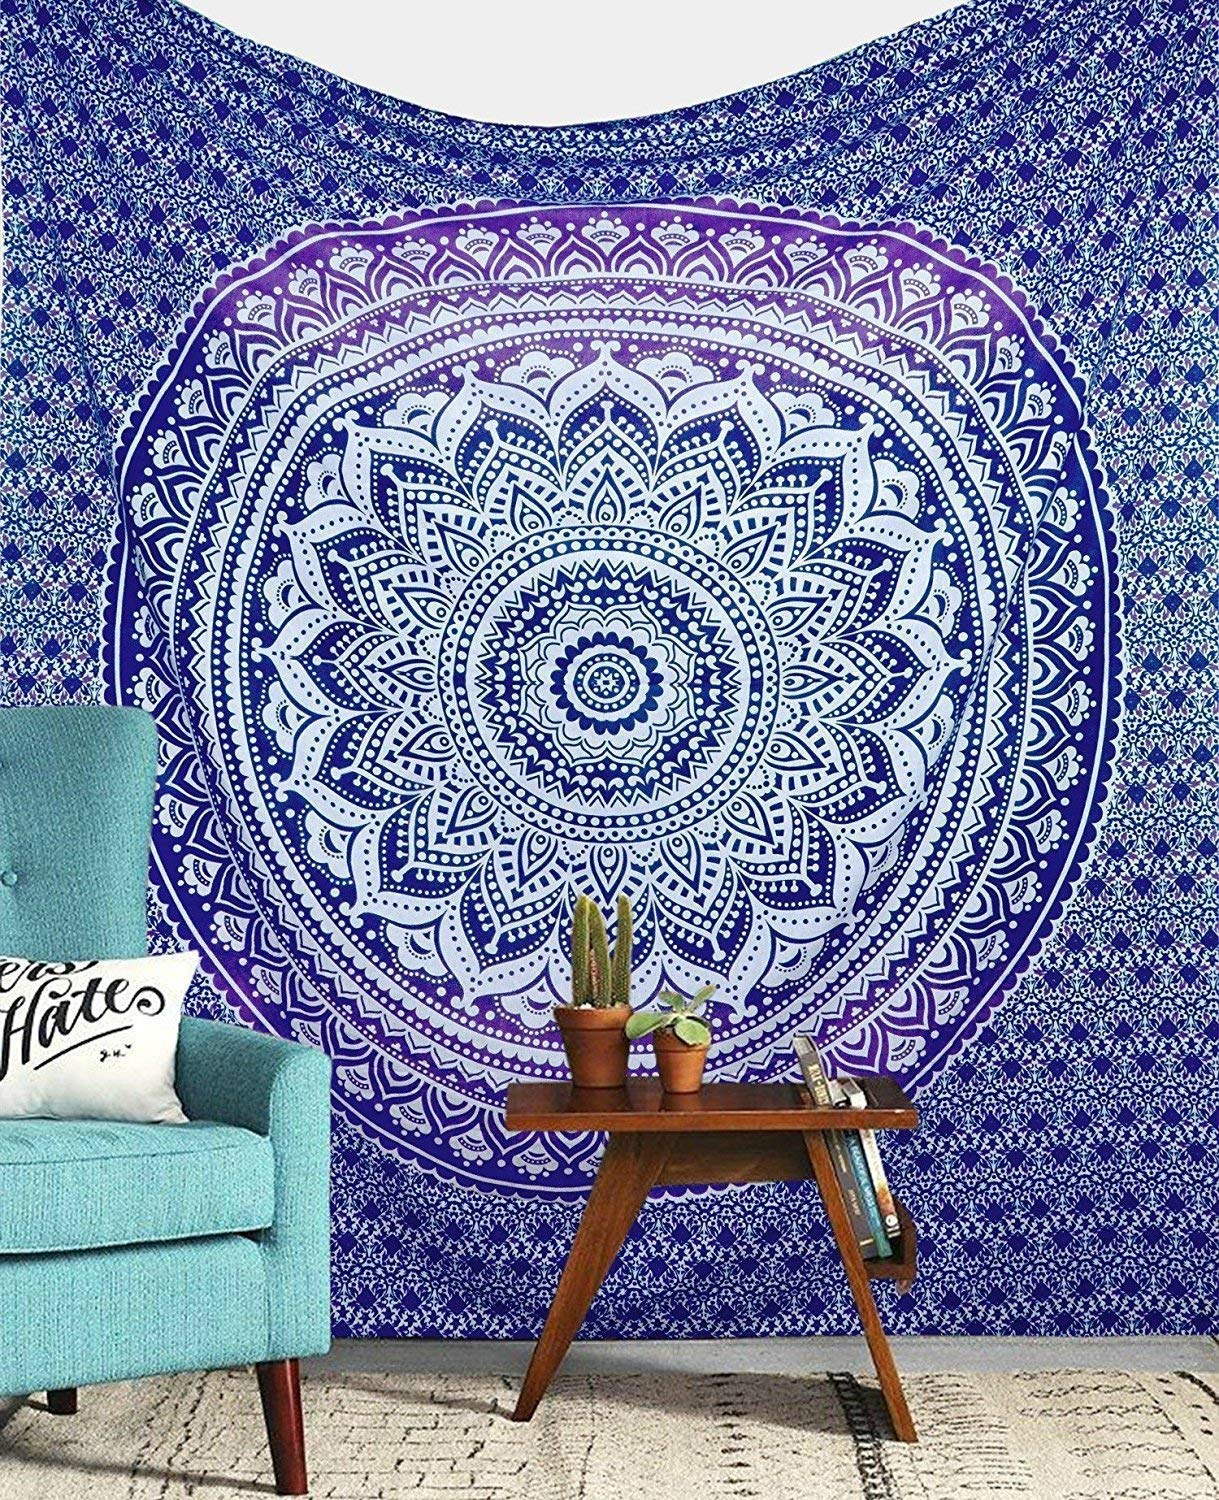 30 X 40 inches Approx Jaipur Handloom Tapestry Wall Tapestry Wall Hanging Tapestries Hippie Hippy Tapestry Indian Wall Decor Bohemian Wall Hanging Tapestries Wa , White Blue Peacock